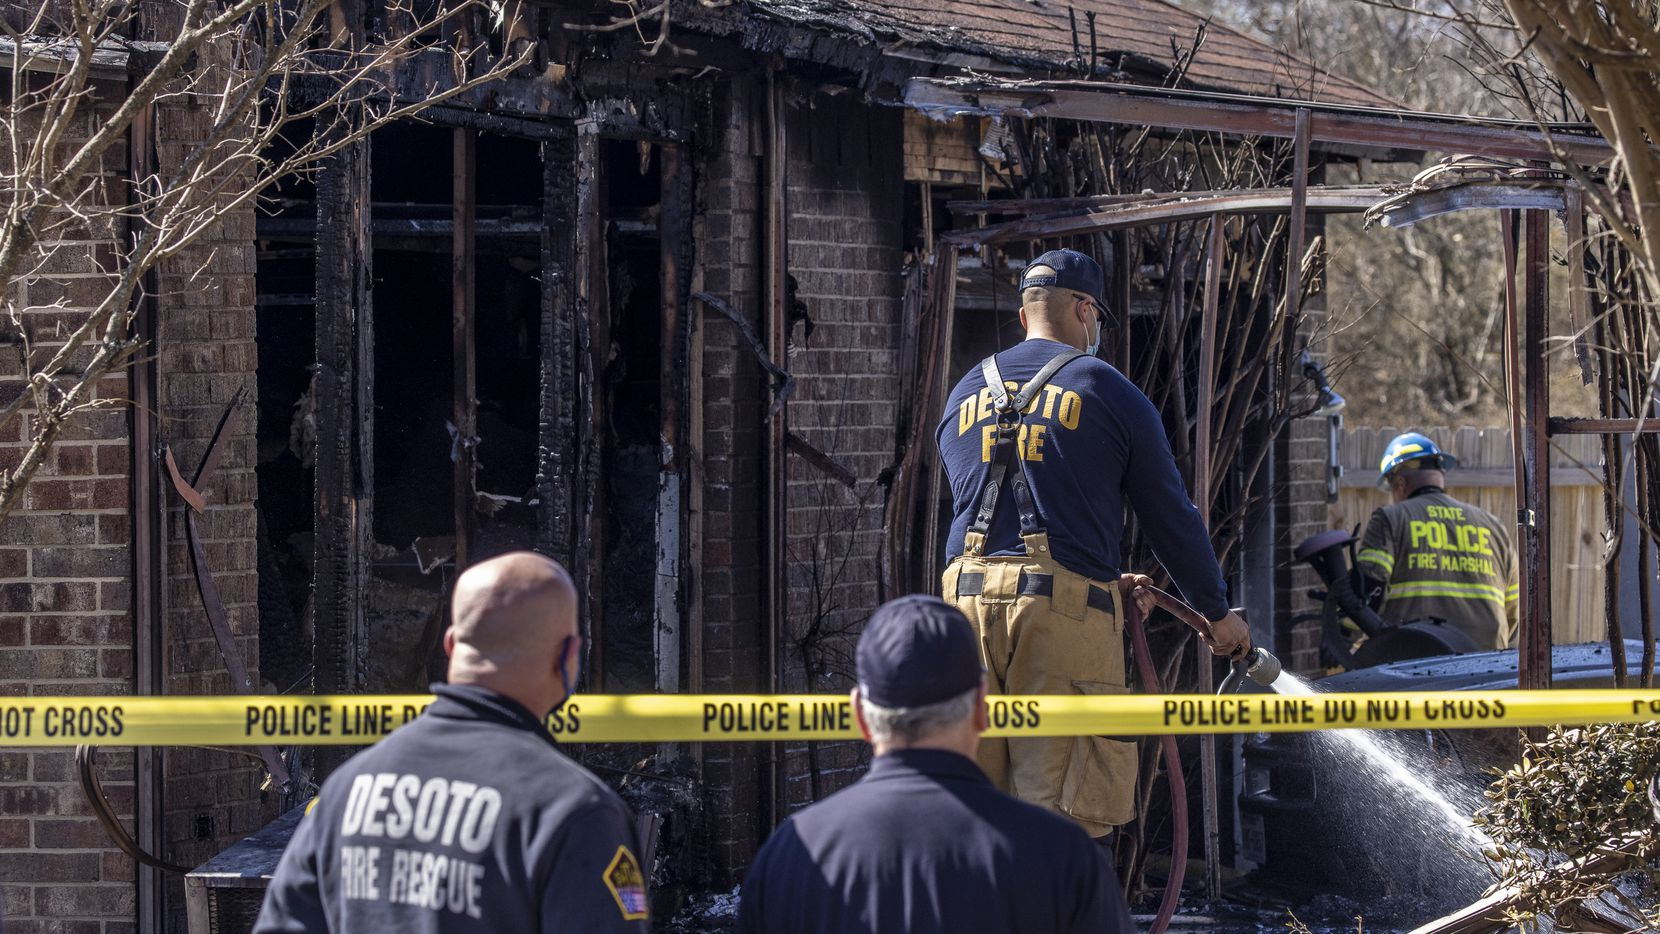 Personnel from the DeSoto Fire Department and the Texas State Fire Marshal investigate the aftermath of a house fire on the 100 block of Wildwood Court that claimed the lives of two small children, ages 1 and 2, on Tuesday morning, Feb. 23, 2021. (Lynda M. González/The Dallas Morning News)